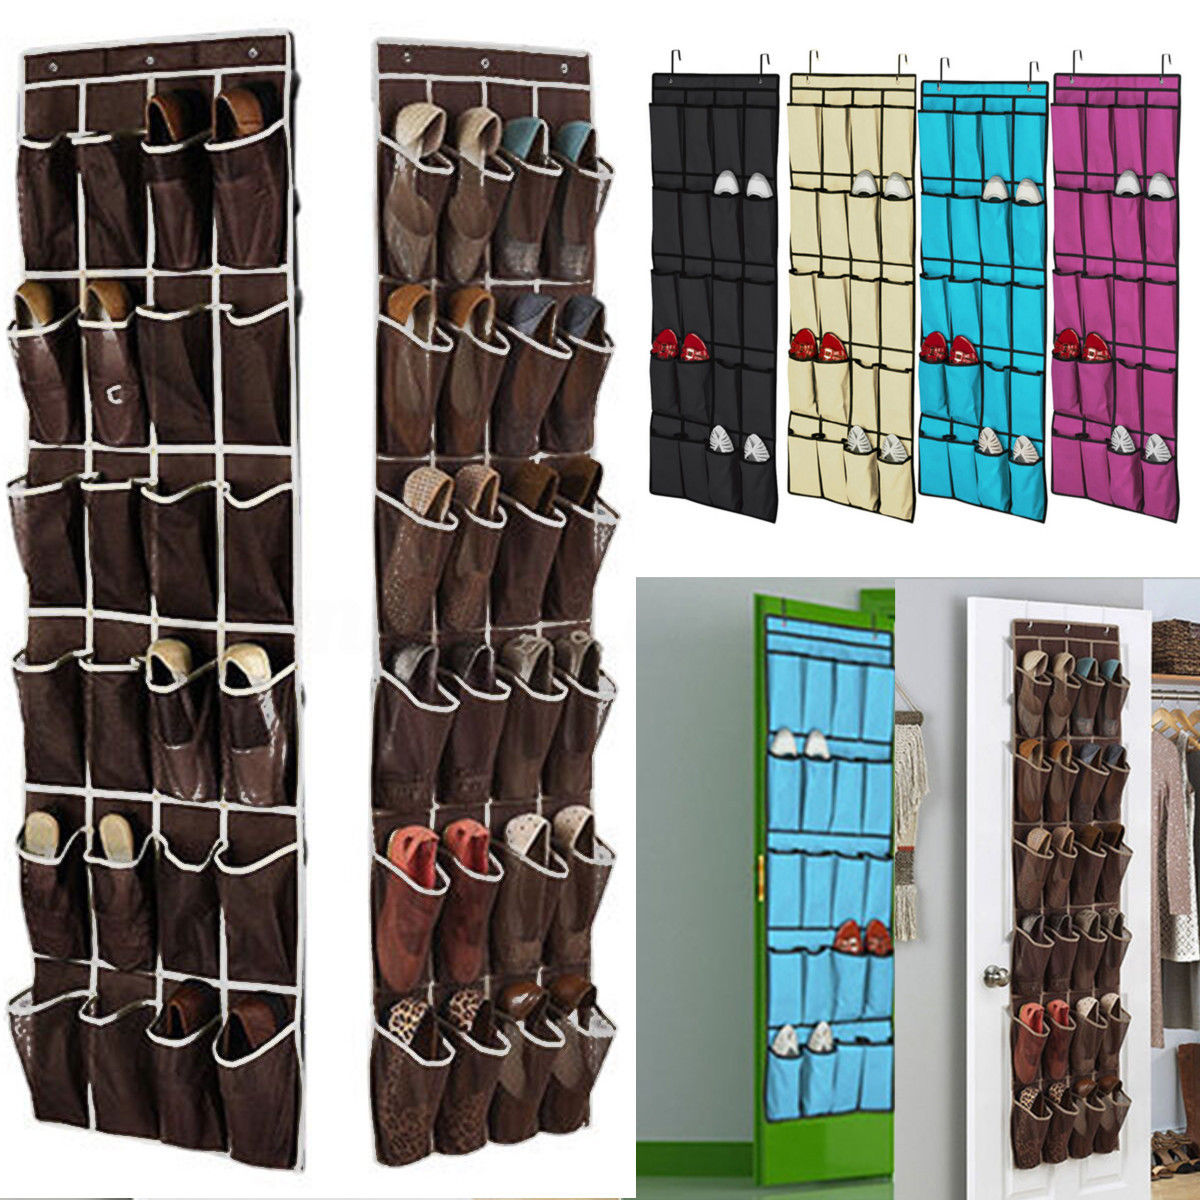 pockets space door hanging shoes organizer mesh